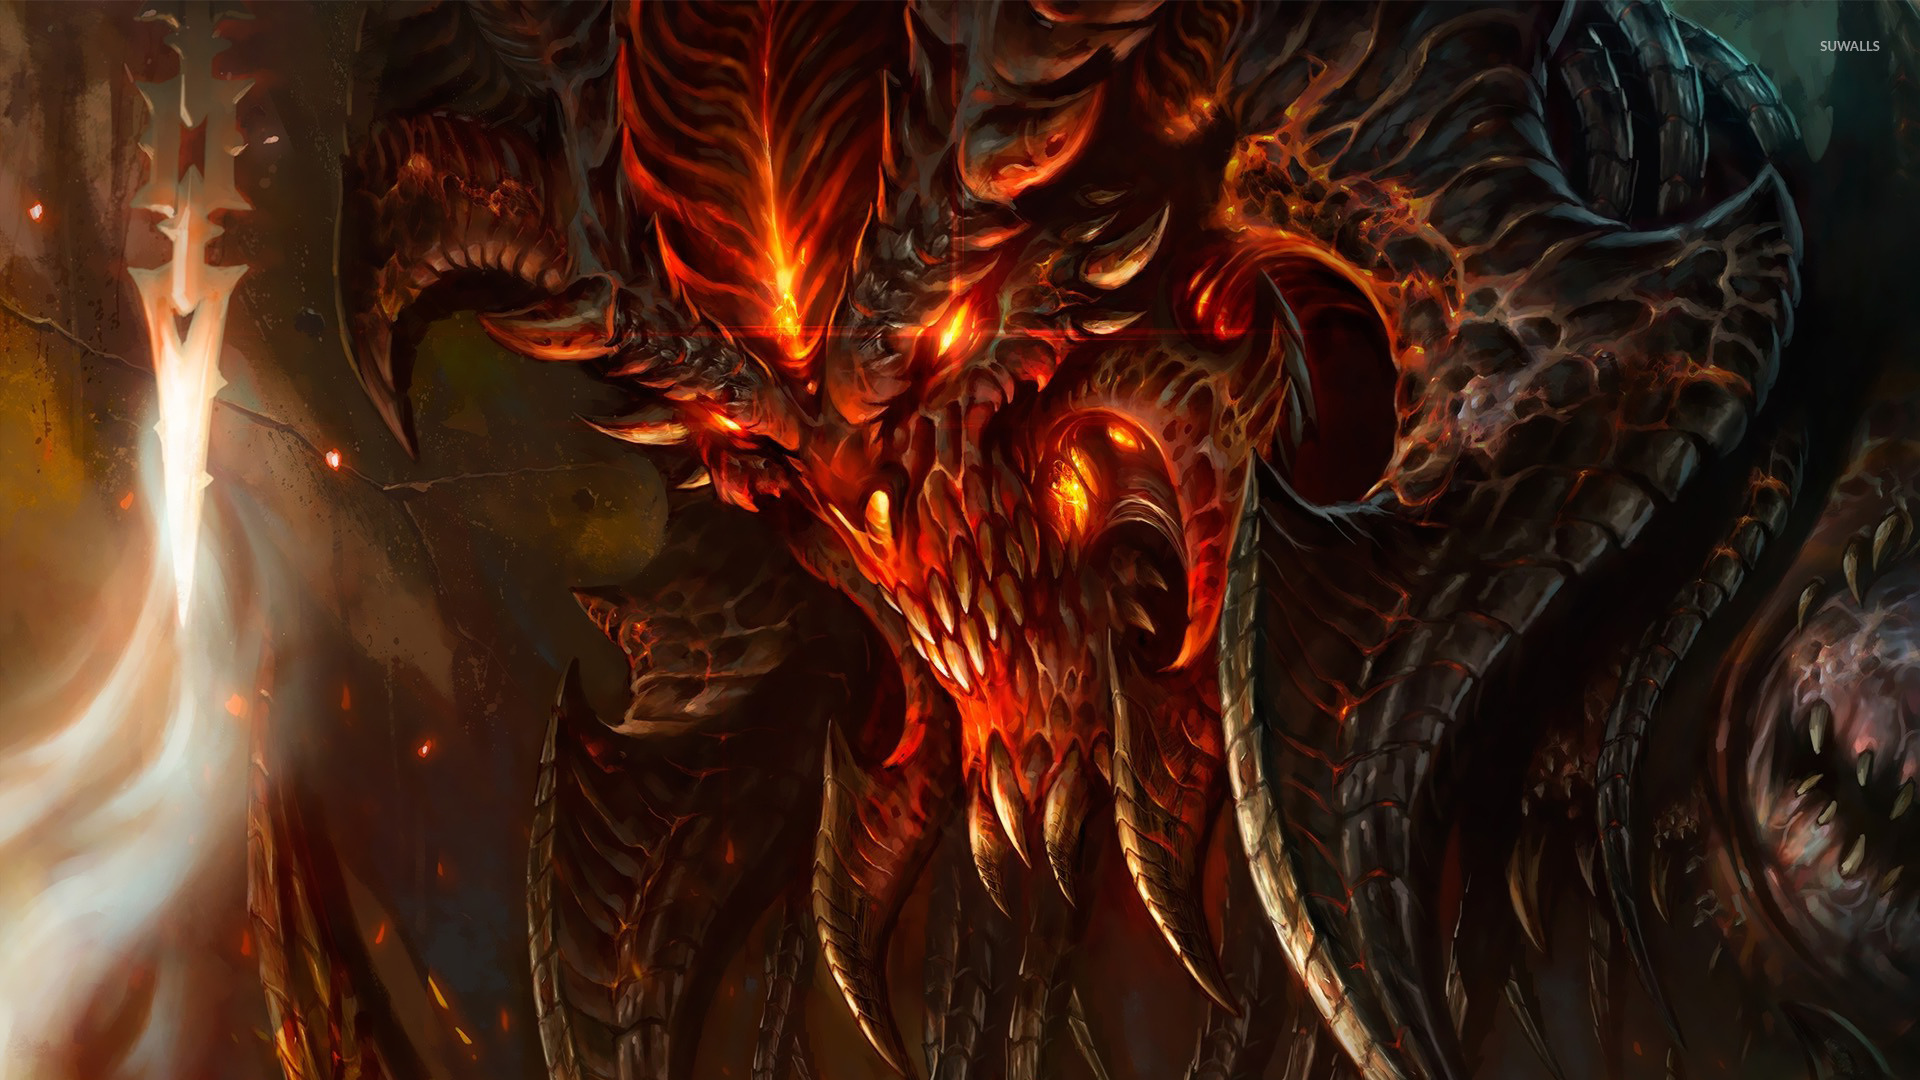 diablo wallpaper 2560x1440 - photo #30